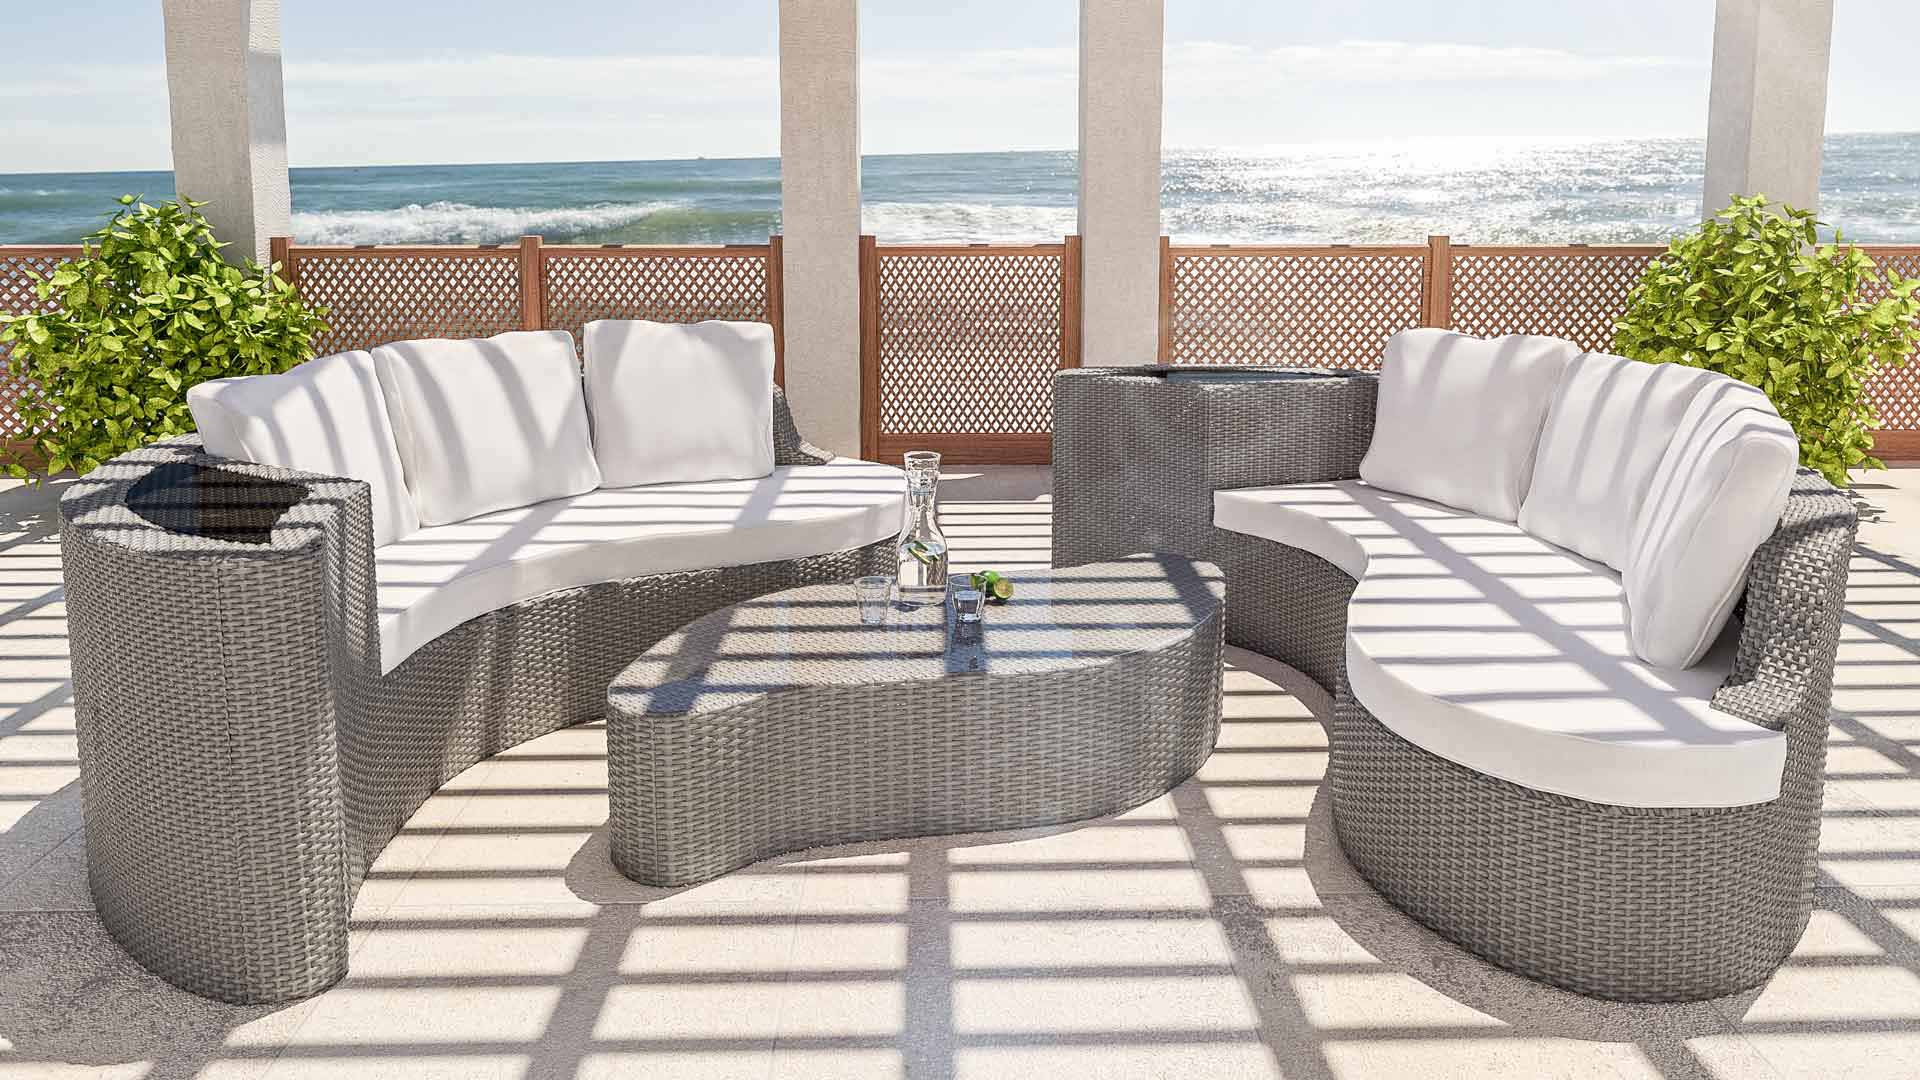 artelia rattaninsel f r garten und terrasse aus polyrattan. Black Bedroom Furniture Sets. Home Design Ideas